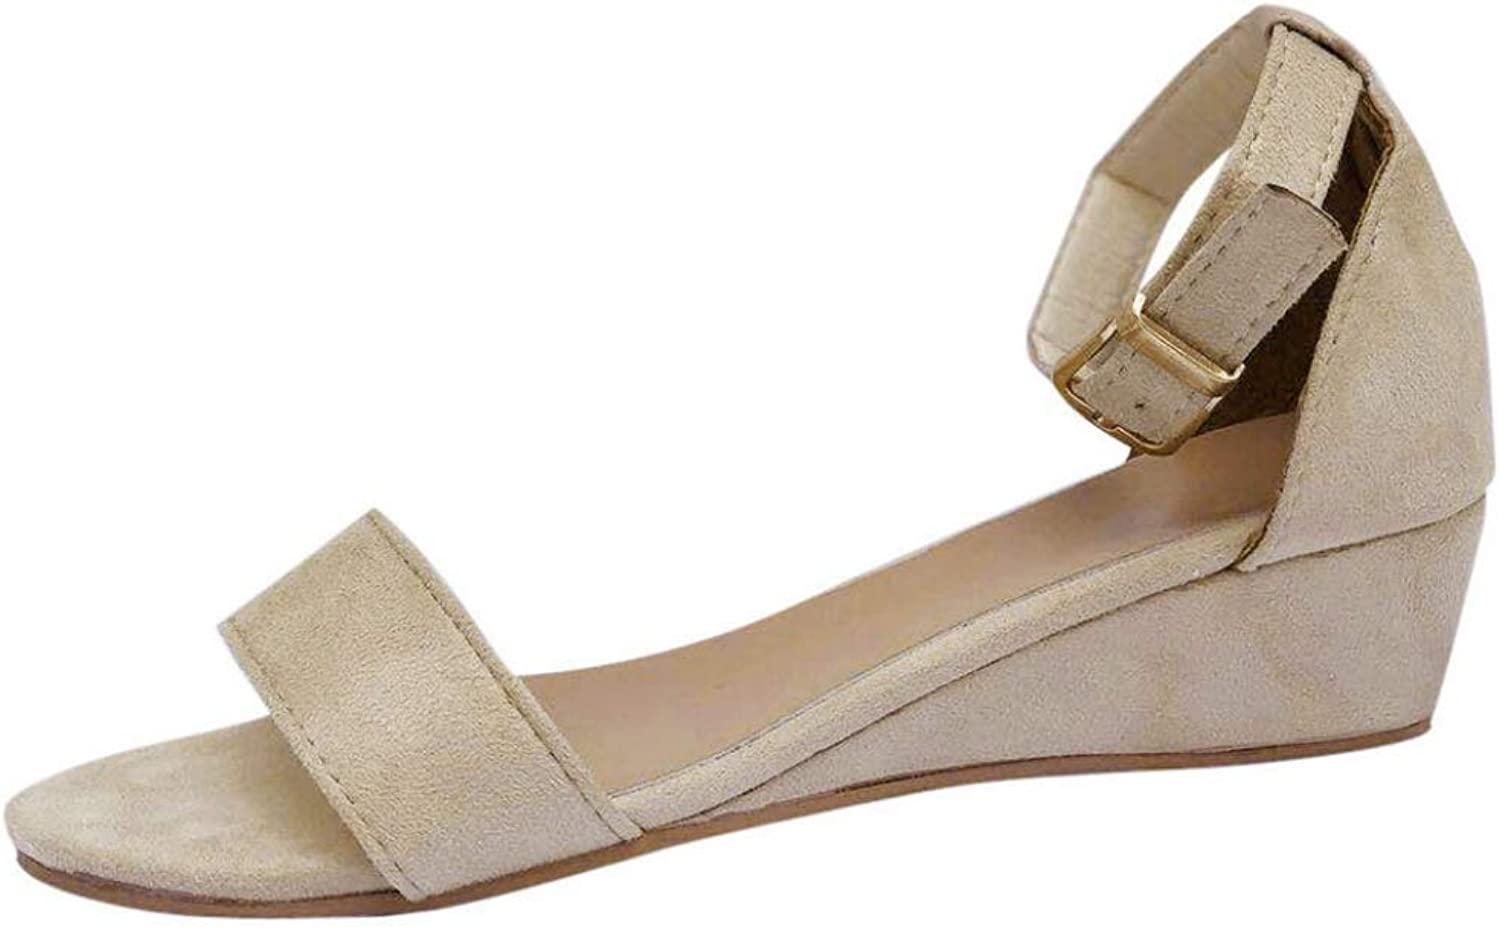 Woman Ankle Buckle Strap Wedge Low Heel Casual Sandals Open Toe Flat Ladies Summer Comfort shoes